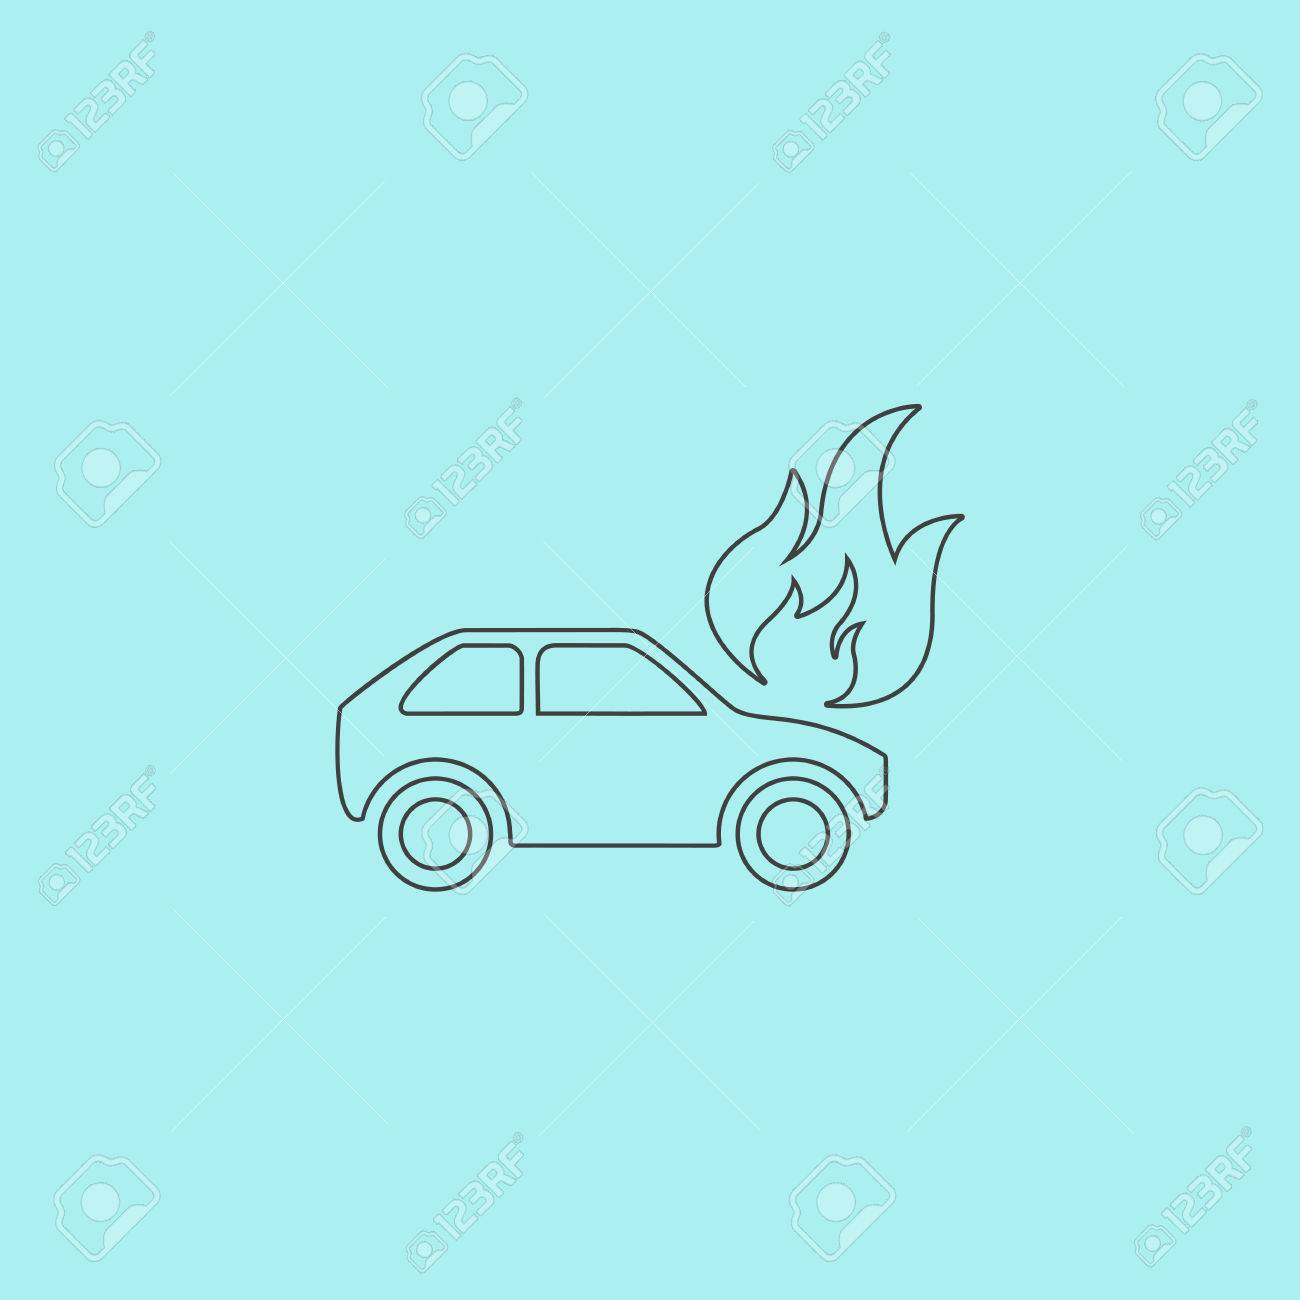 Car Fire Simple Outline Flat Vector Icon Isolated On Blue Background Stock